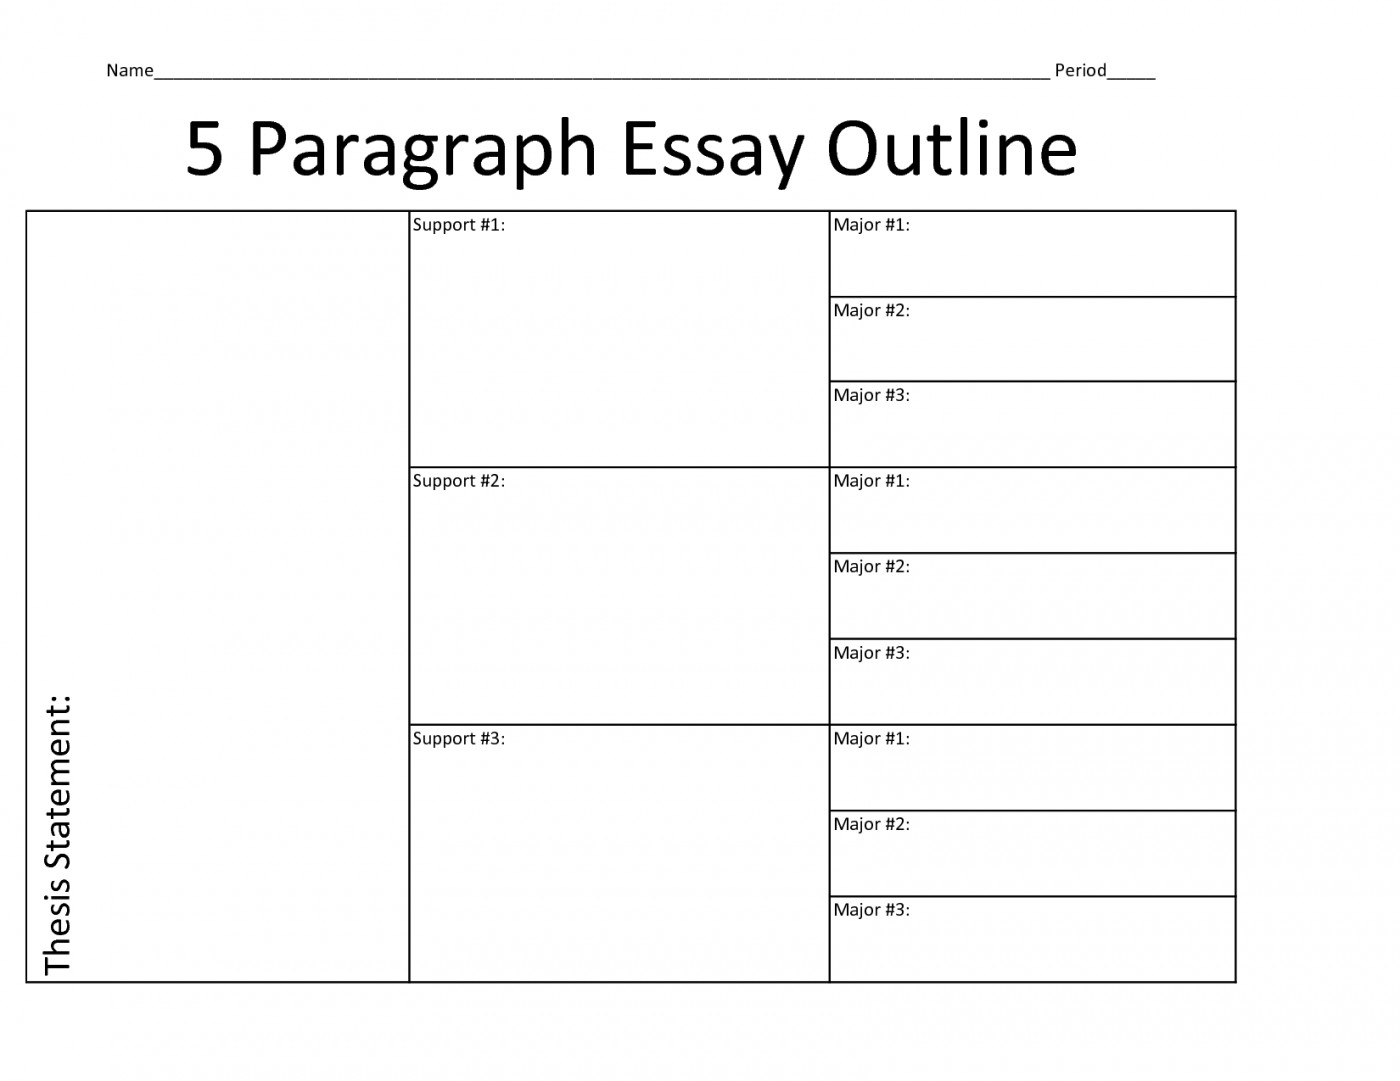 015 Five Paragraph Essay Graphic Organizer Organizers Executive Functioning Mr Brown039s Outline L Wonderful High School Definition 5 Pdf 1400